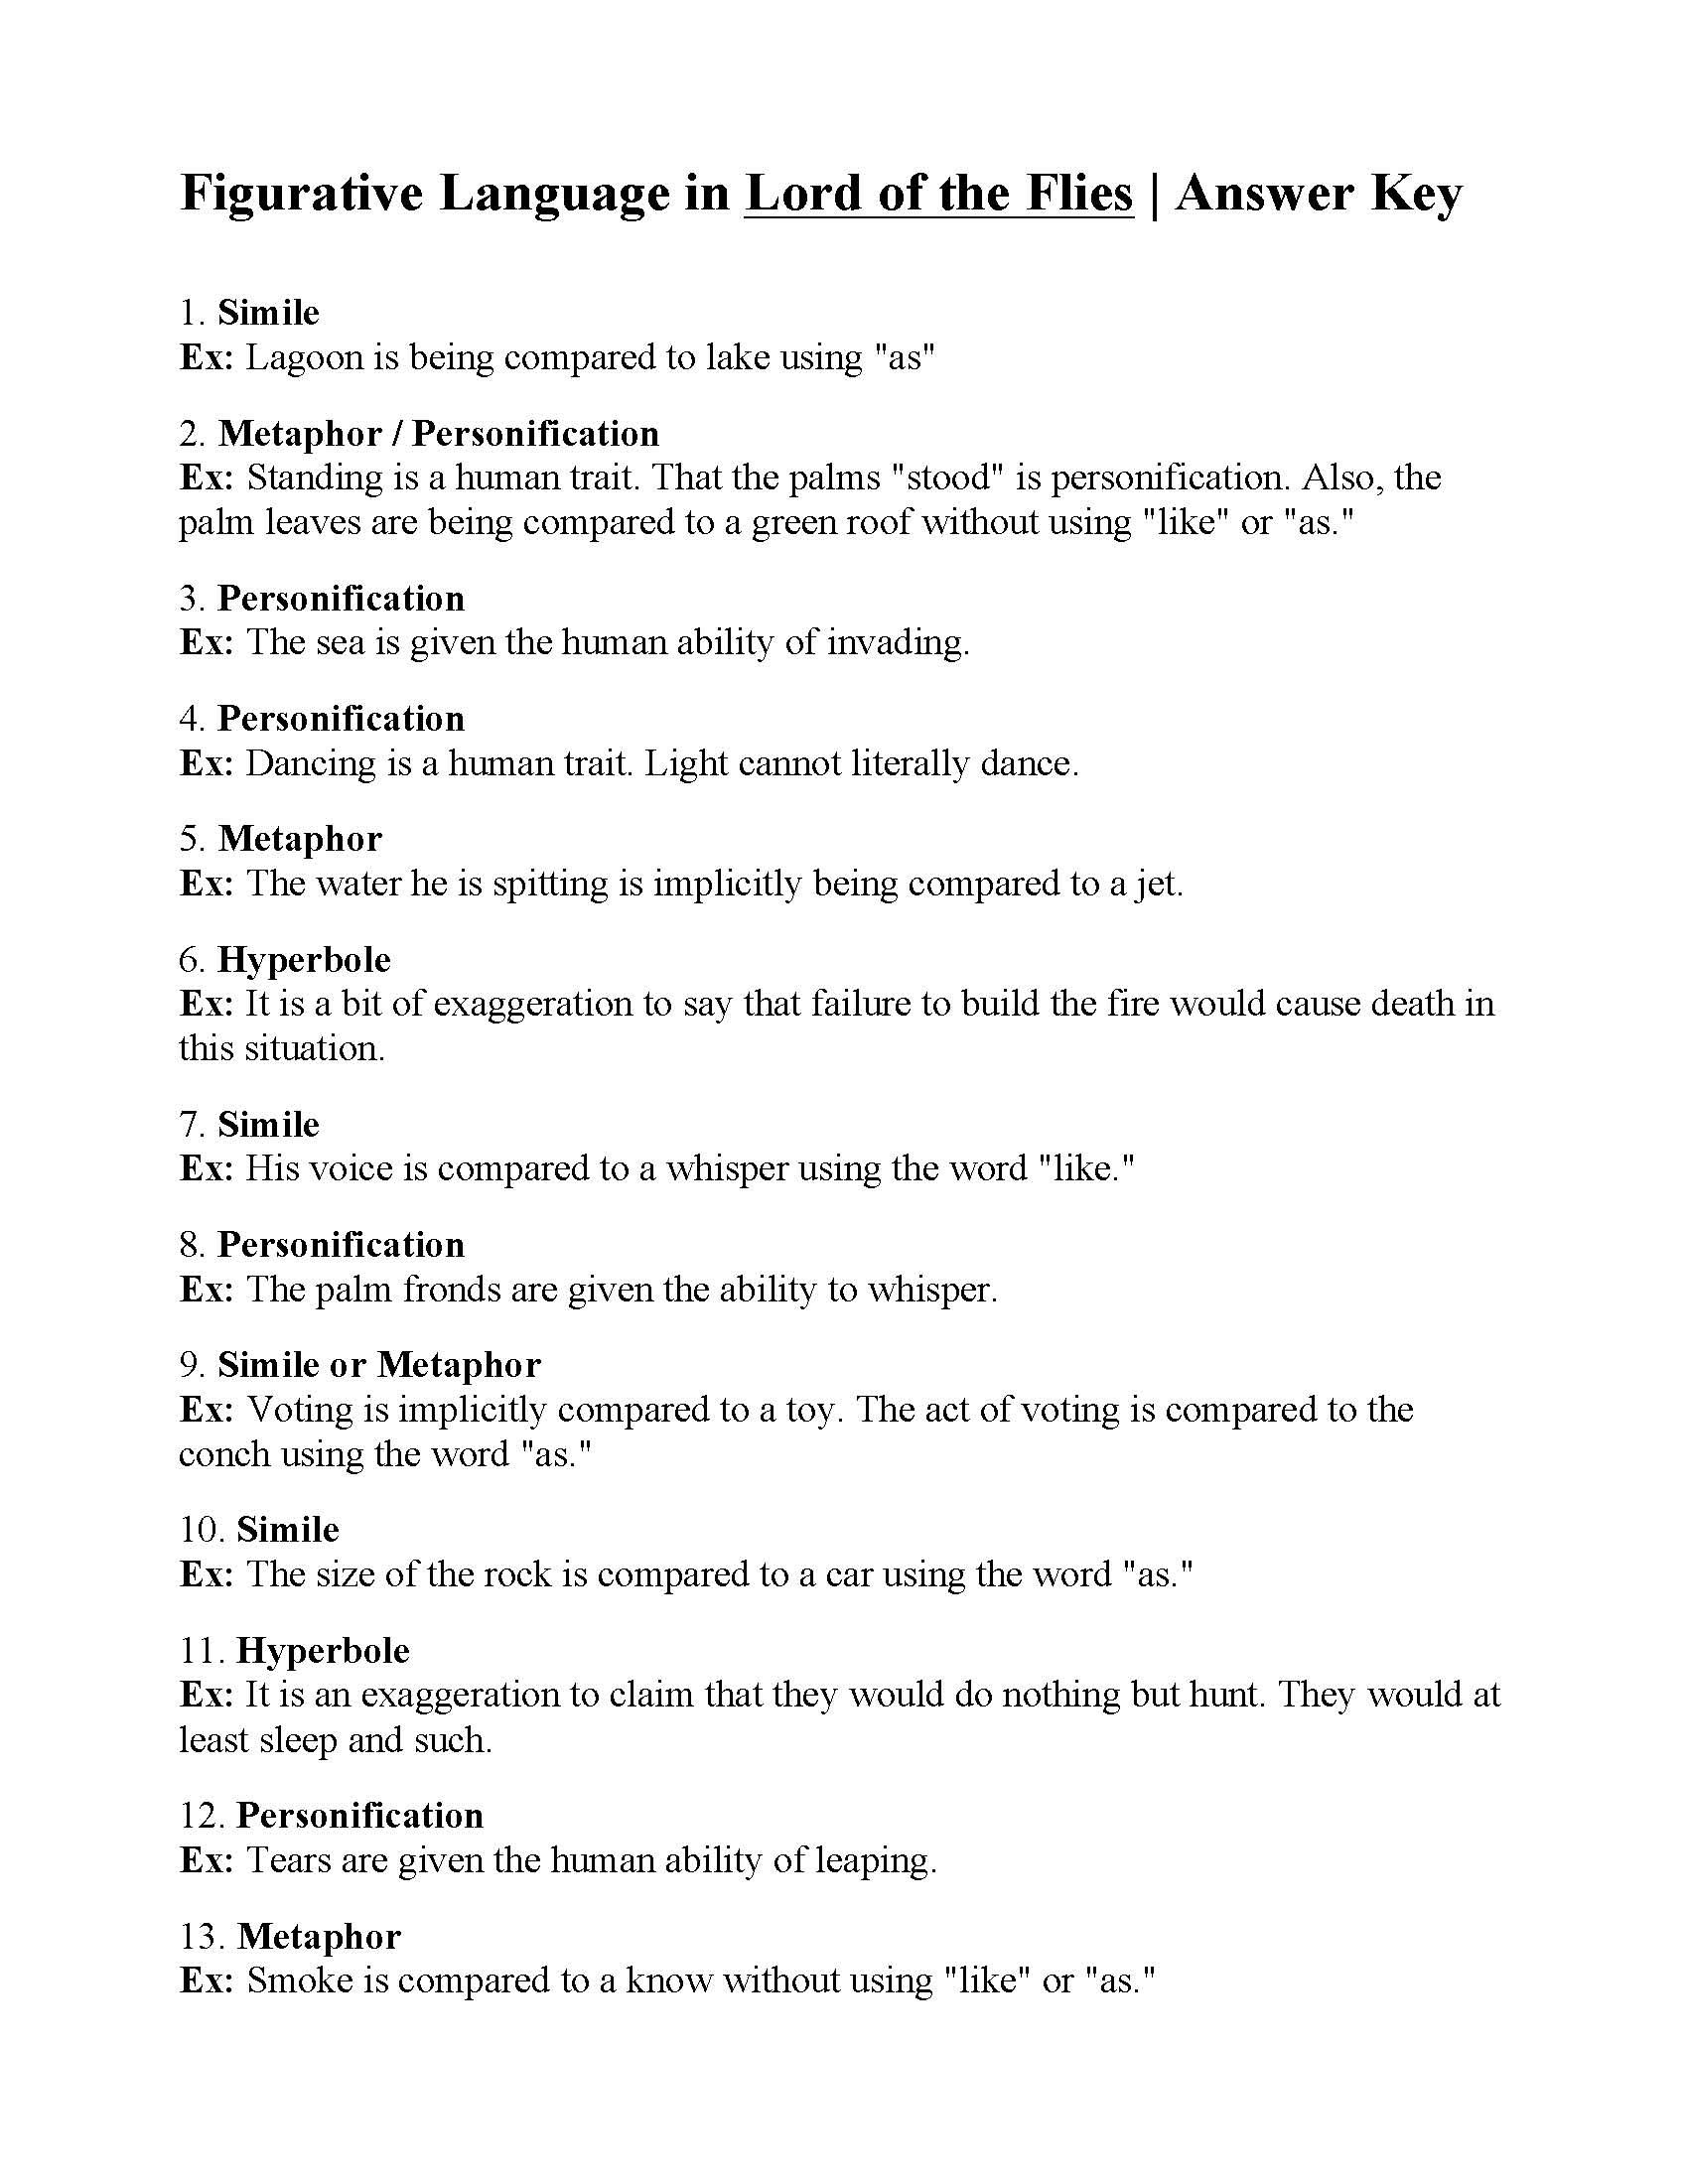 Figurative Language Worksheet Lord Of The Flies Answers Figurative Language Worksheet Language Worksheets Figurative Language Pete's powerpoint station is your destination for free powerpoint presentations for kids and teachers about figurative language, and so much more. figurative language worksheet lord of